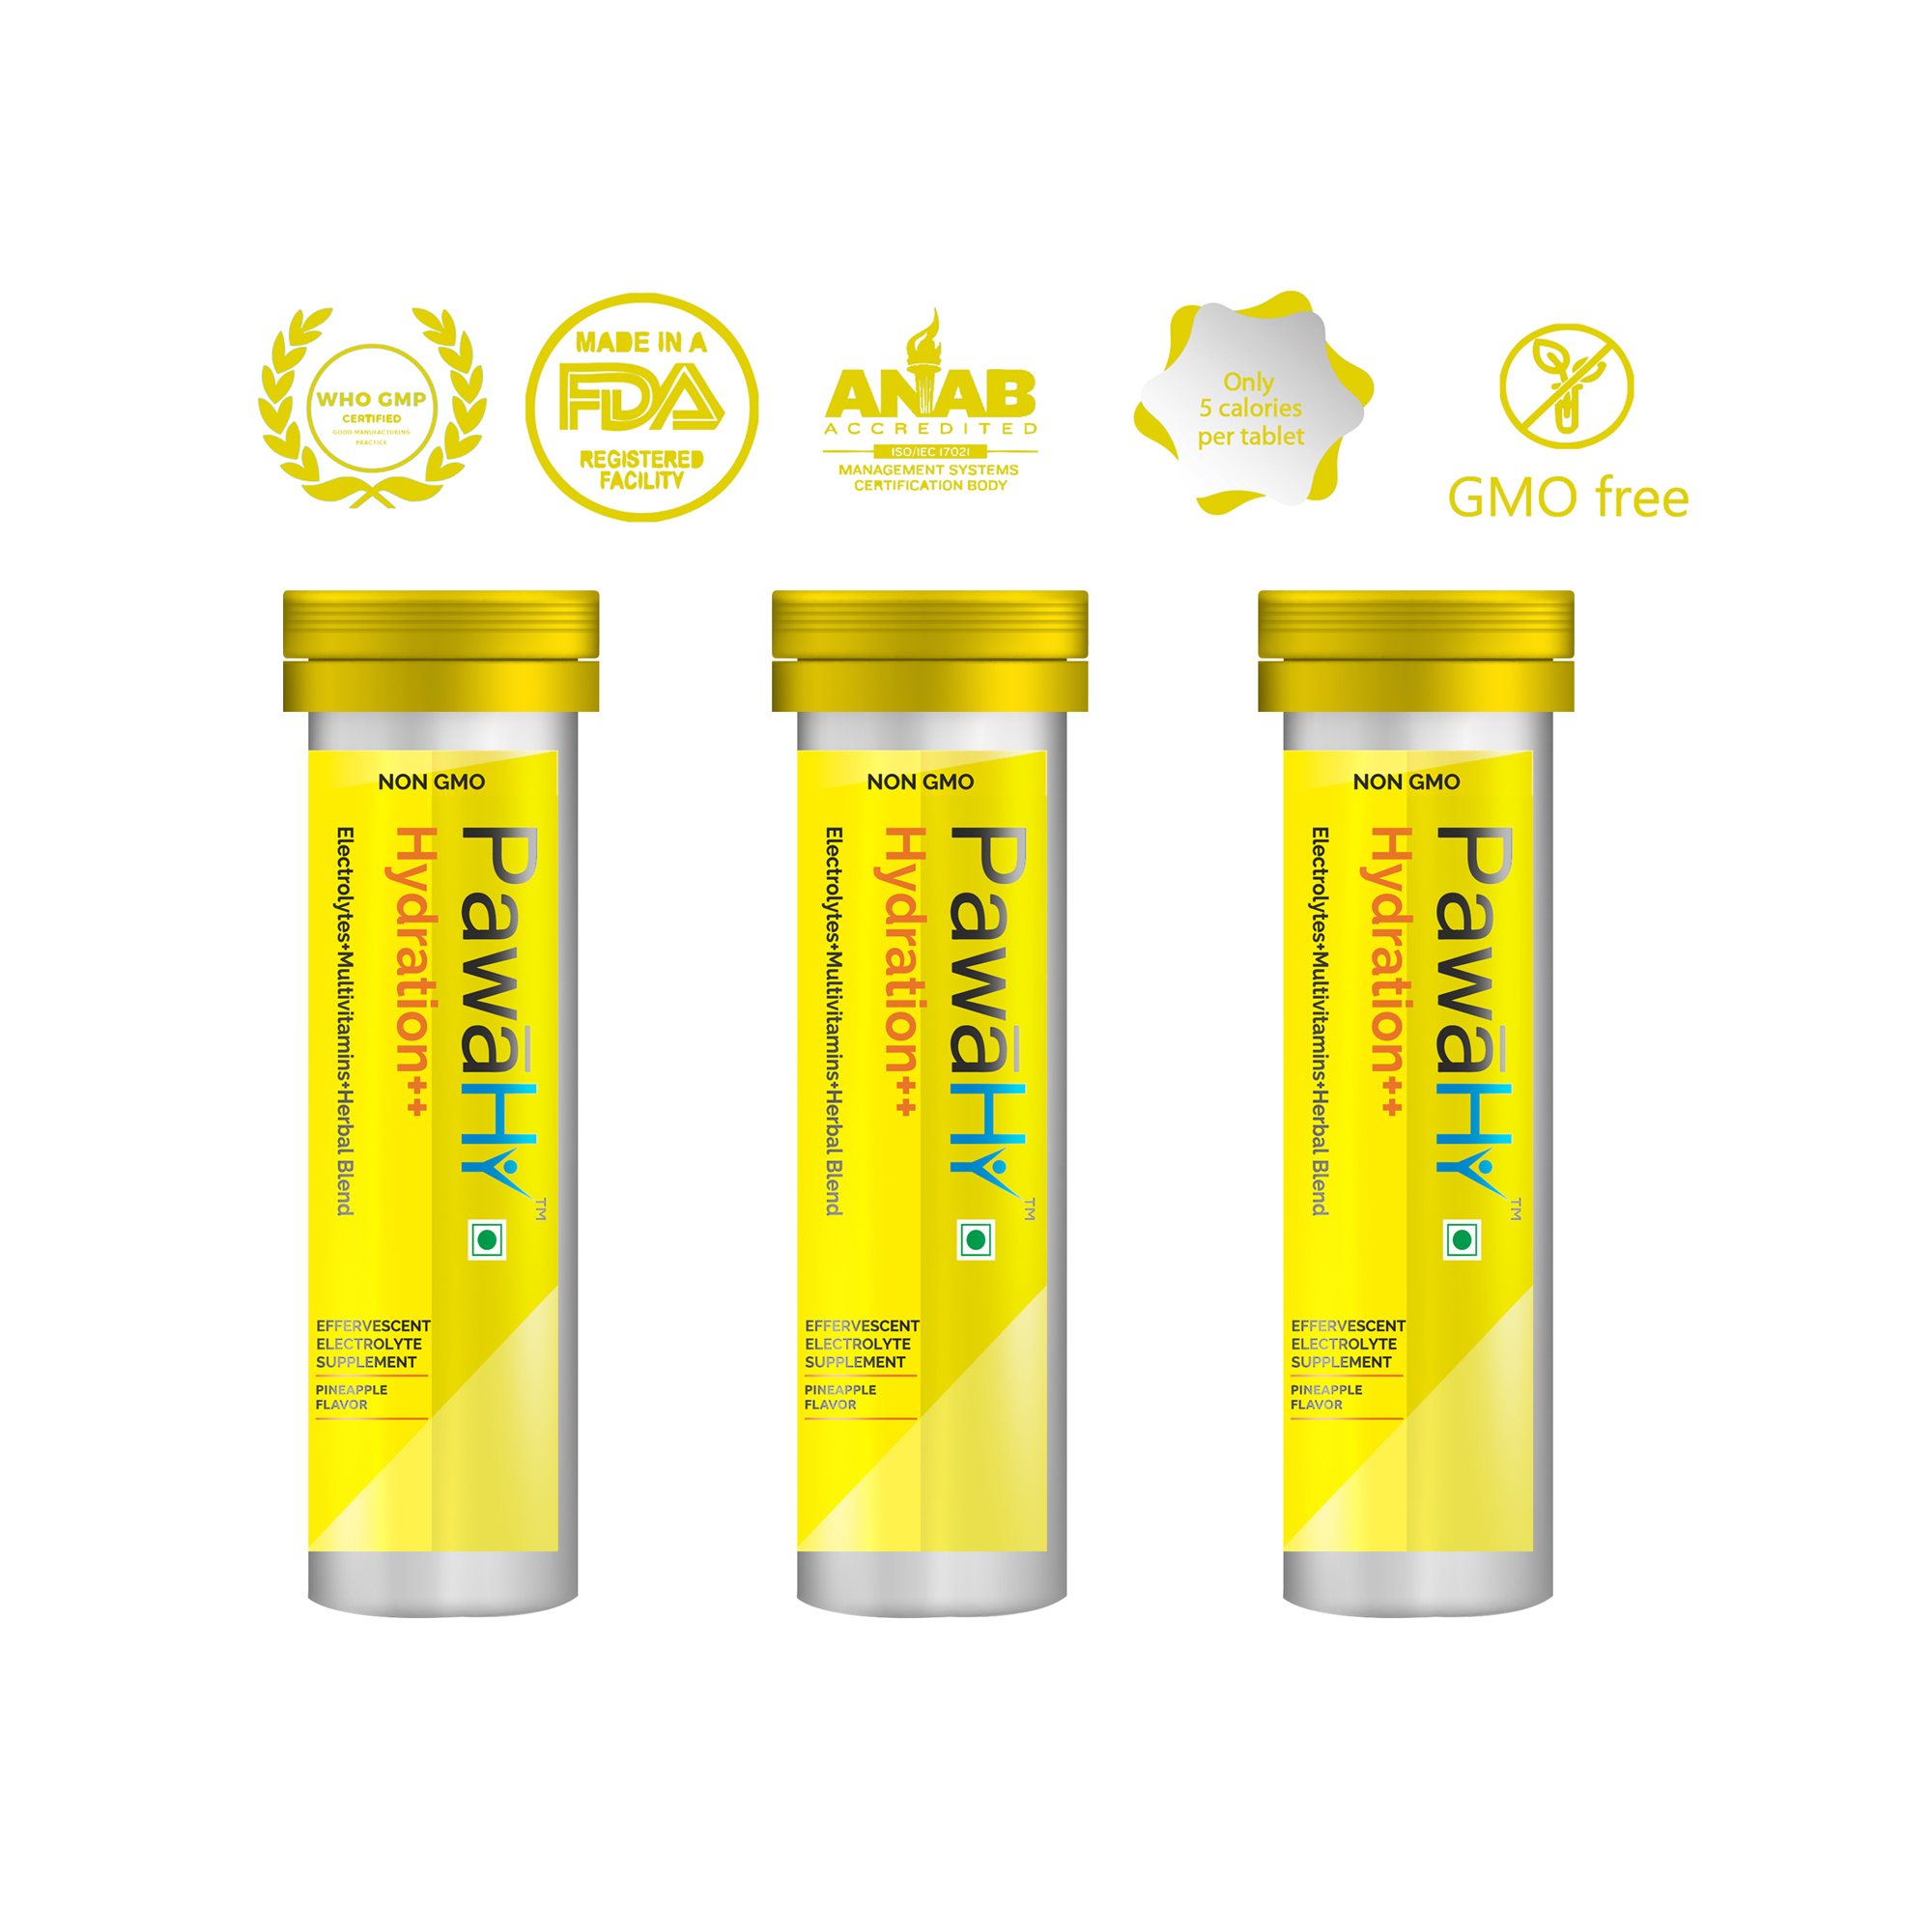 PawaHy Energy Drink for Workout,Electrolytes+Multivitamins+Herbs,Instant Hydration -10 Tablets (Pineapple) Pack of 3